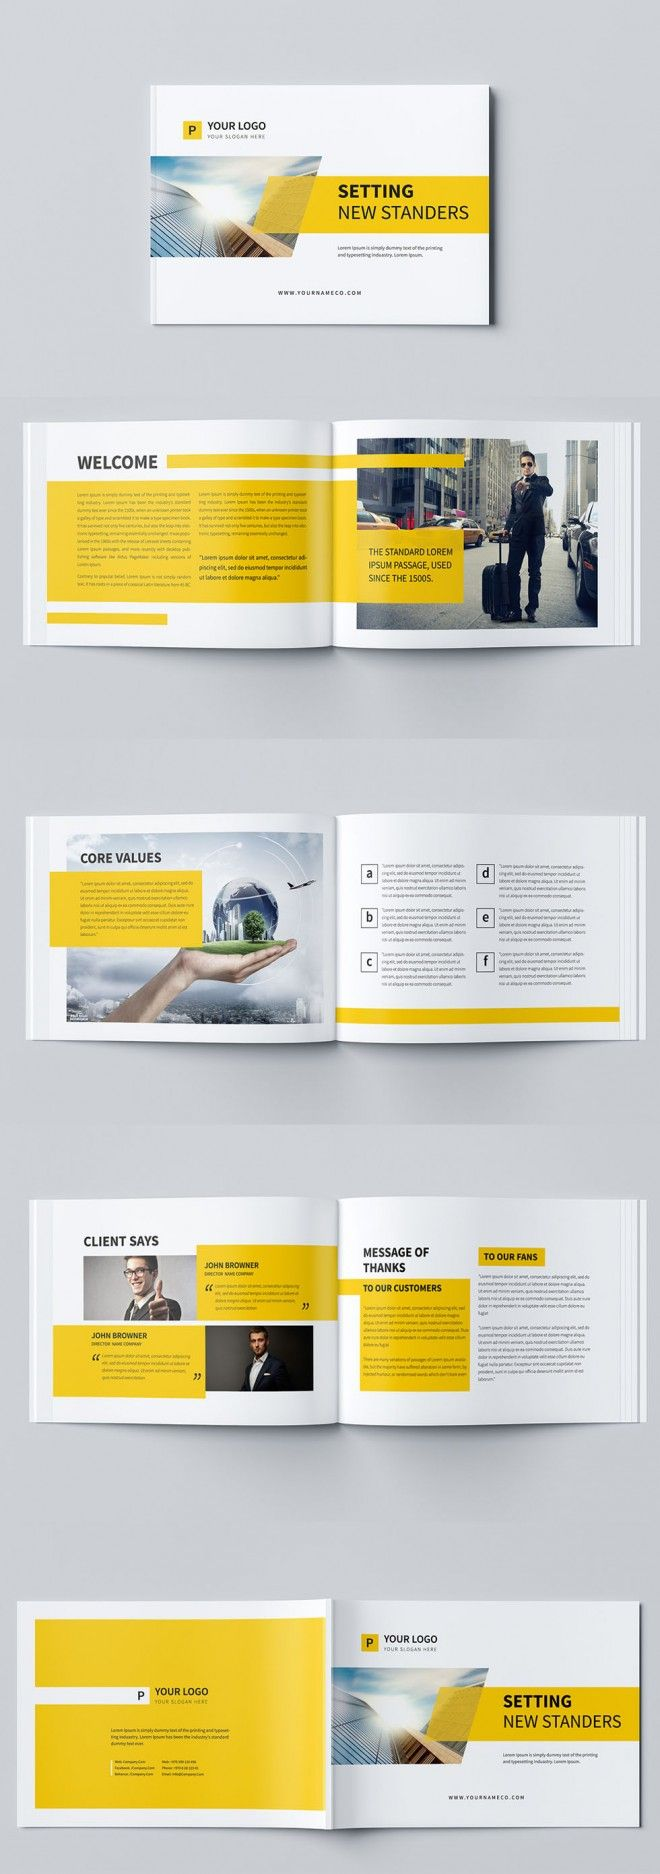 brochure design                                                                                                                                                      More